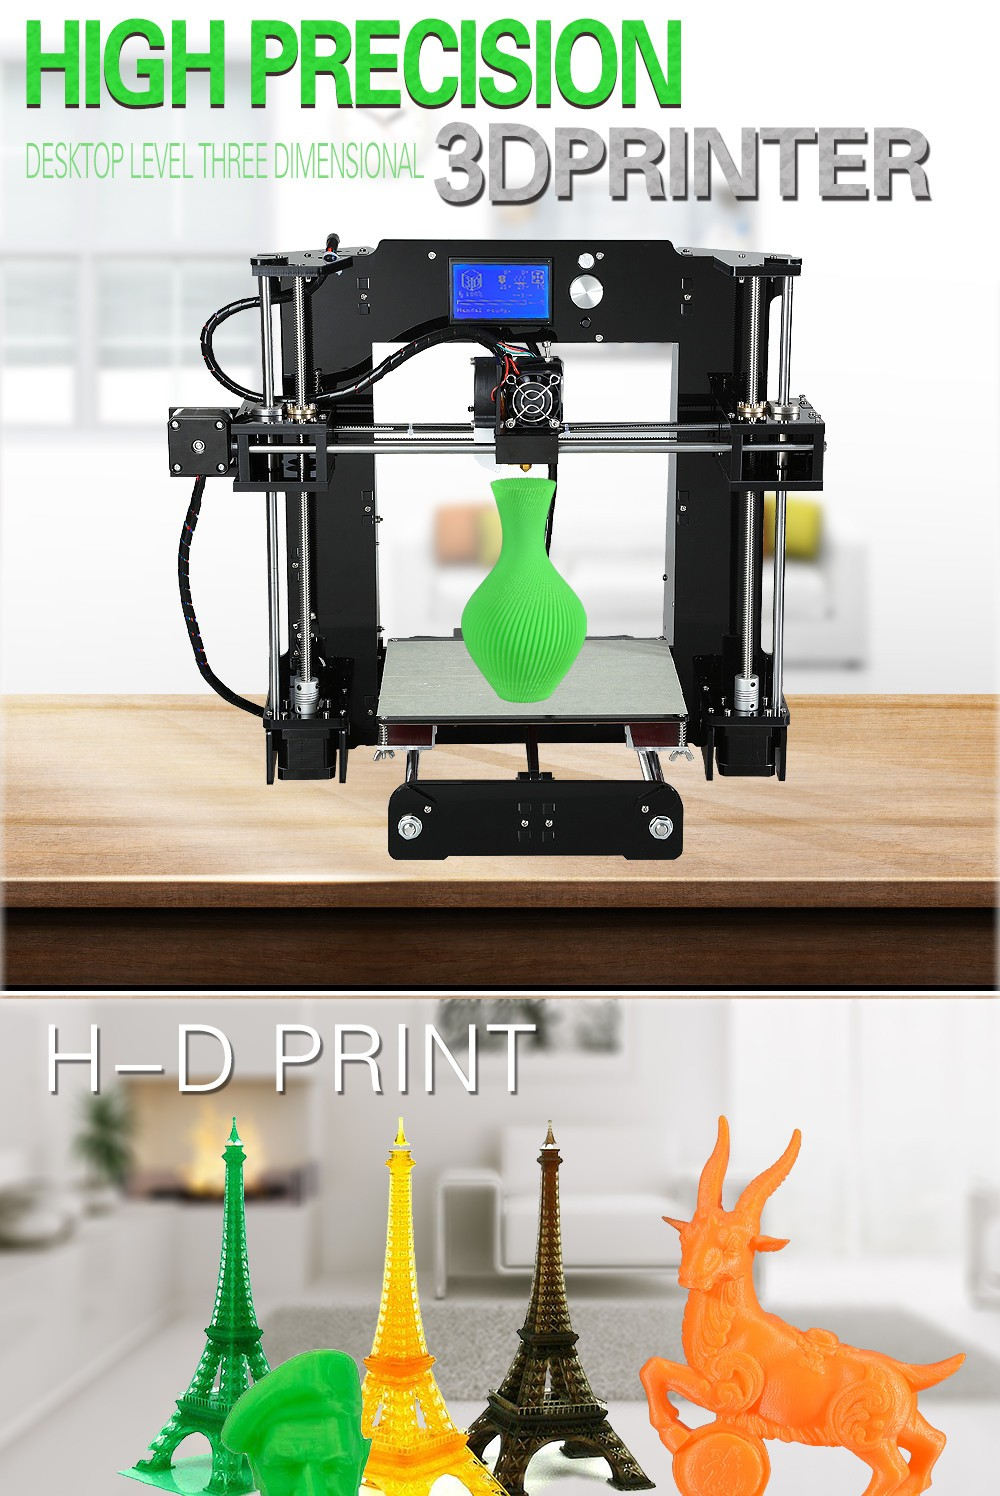 Easy Build Anet A8&A6 Reprap Prusa I3 Arcylic 3d Printer Big Size High Precision DIY3DPrinter Kit+Filament+SD Card+LCD+Hotbed